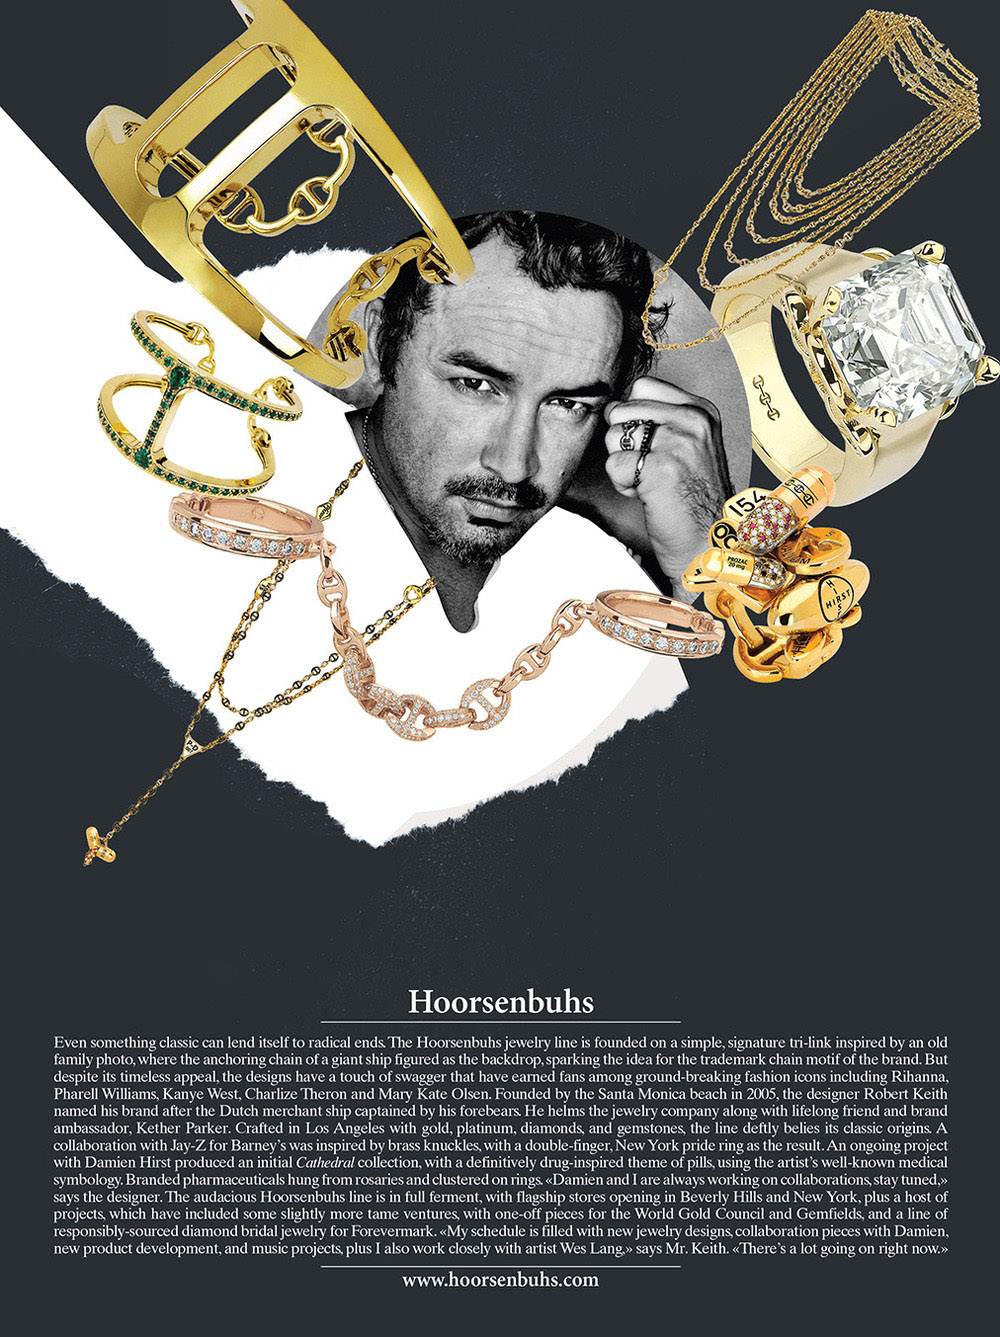 robert-keith-hoorsenbuhs-vogue-magazine-article-published-materials-mark-maryanovich